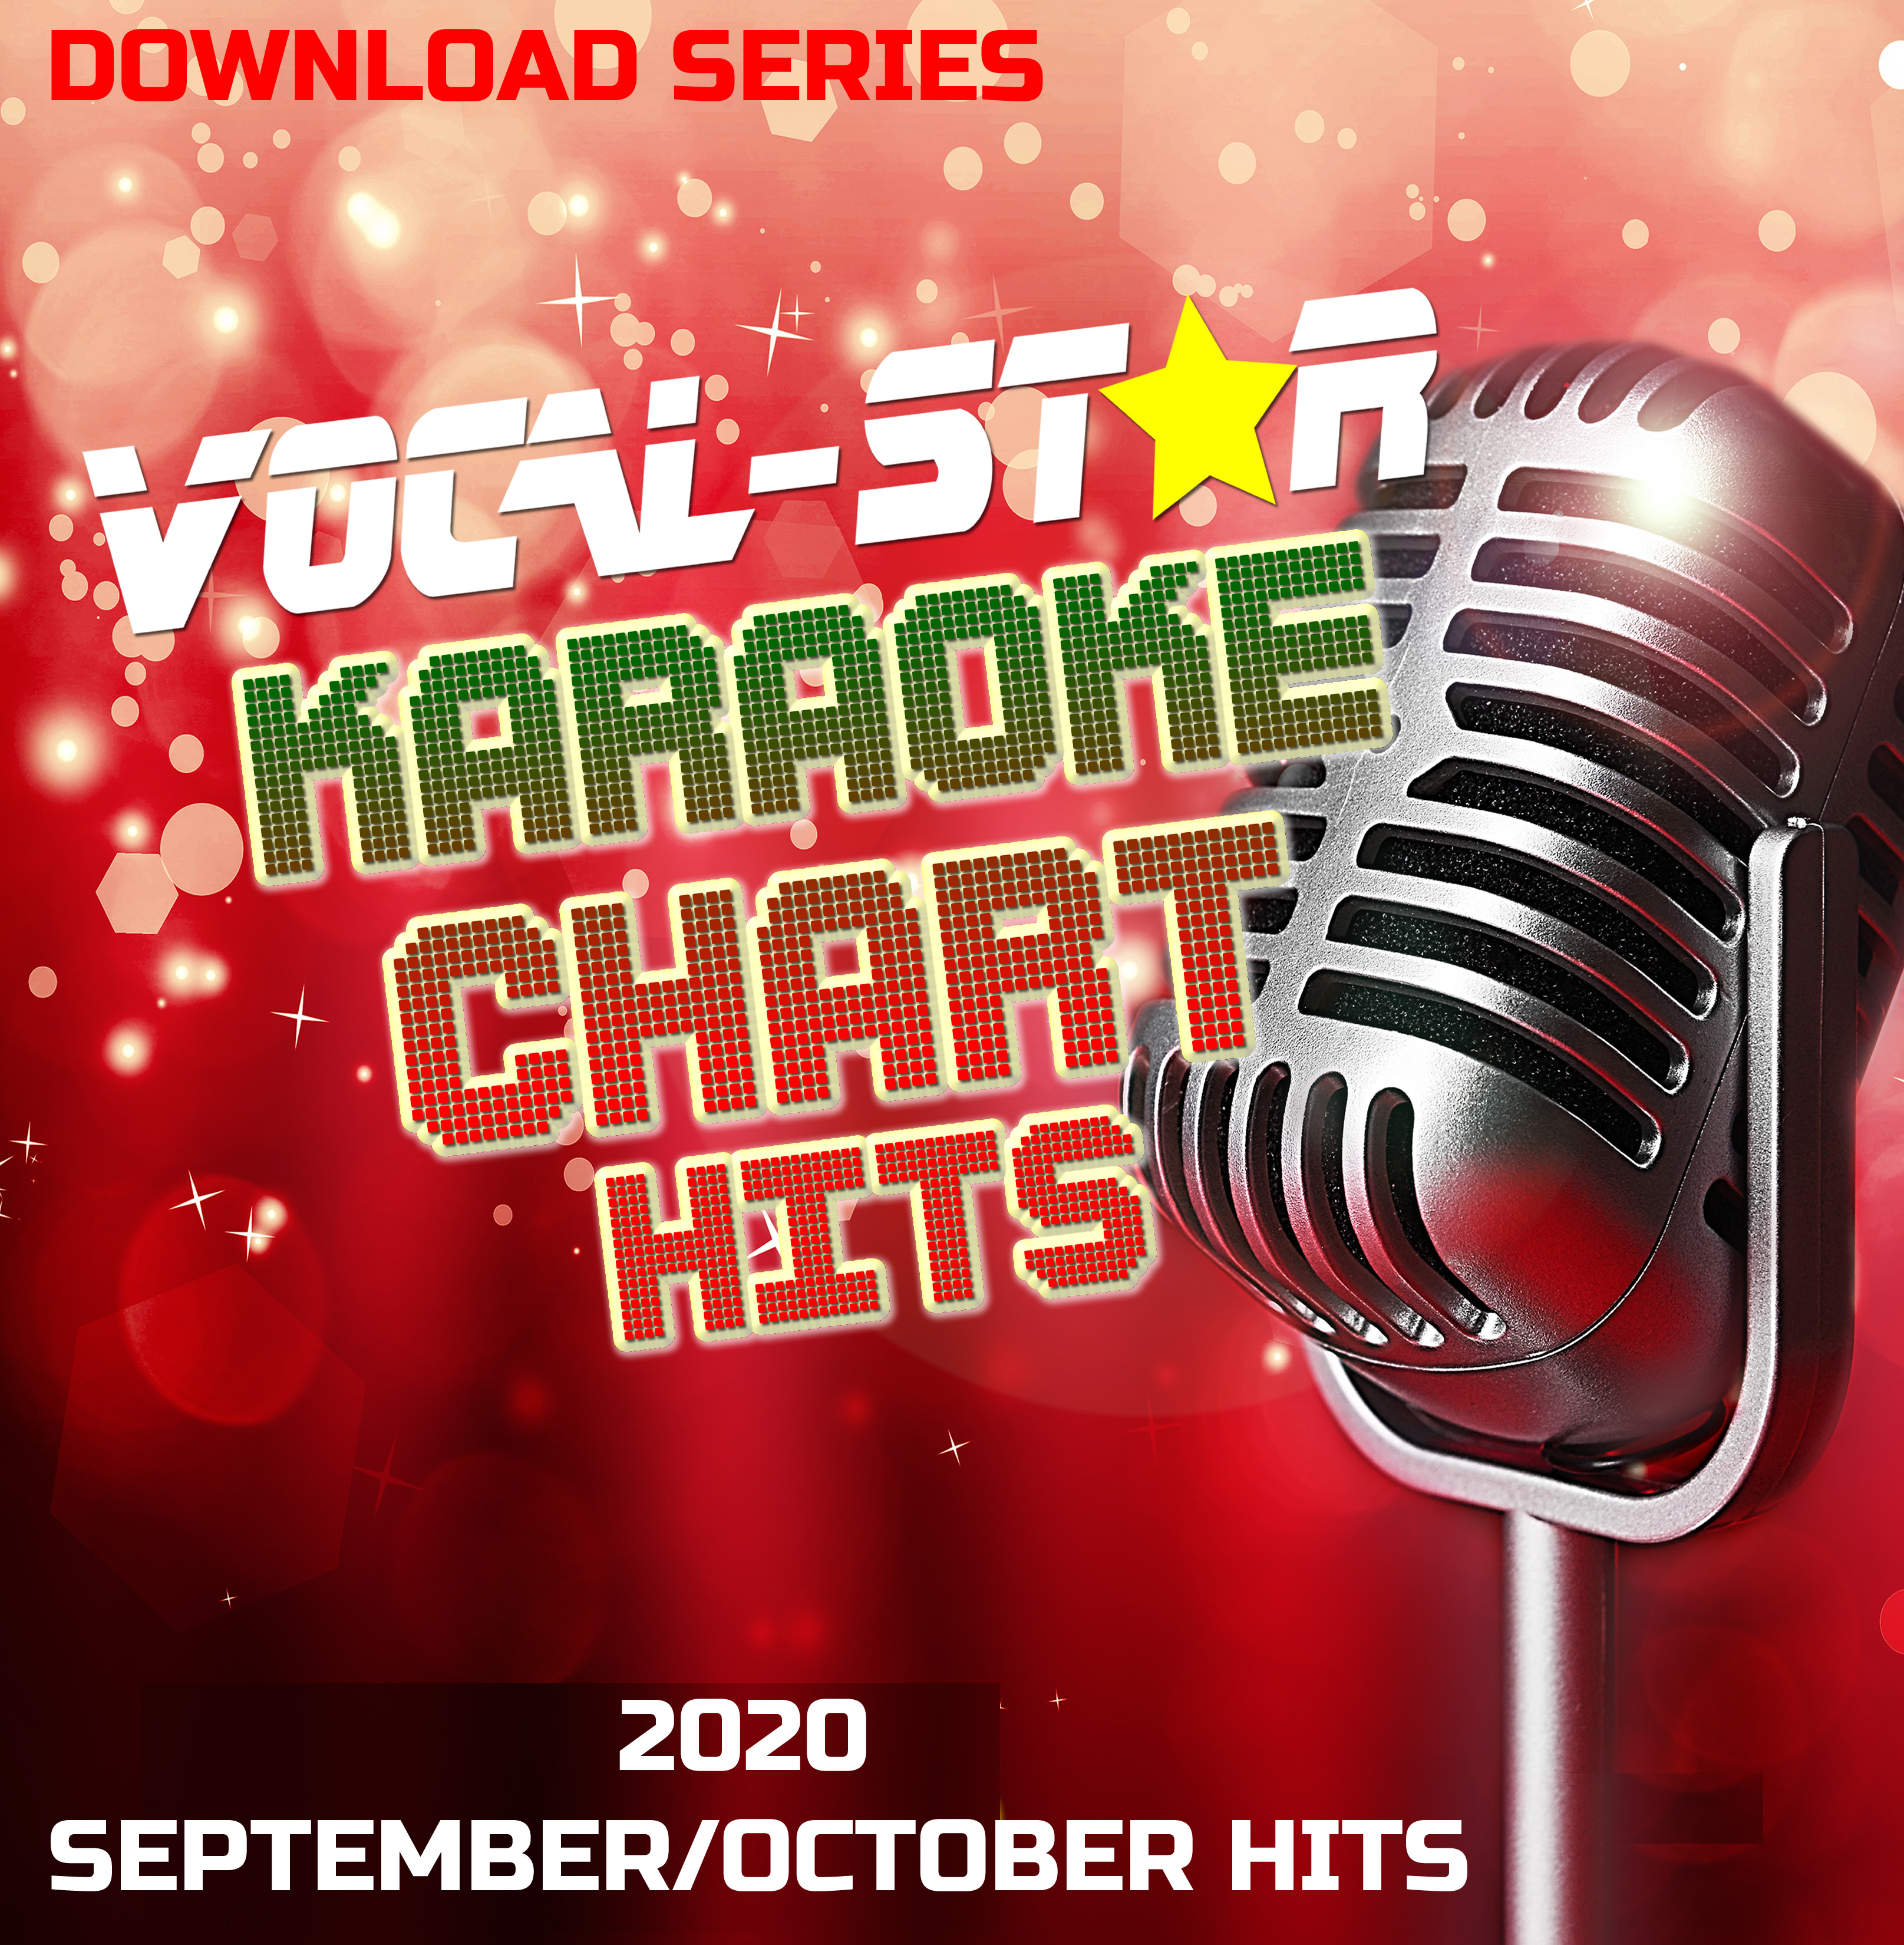 Vocal-Star Hits of September & October 2020 Digital Download